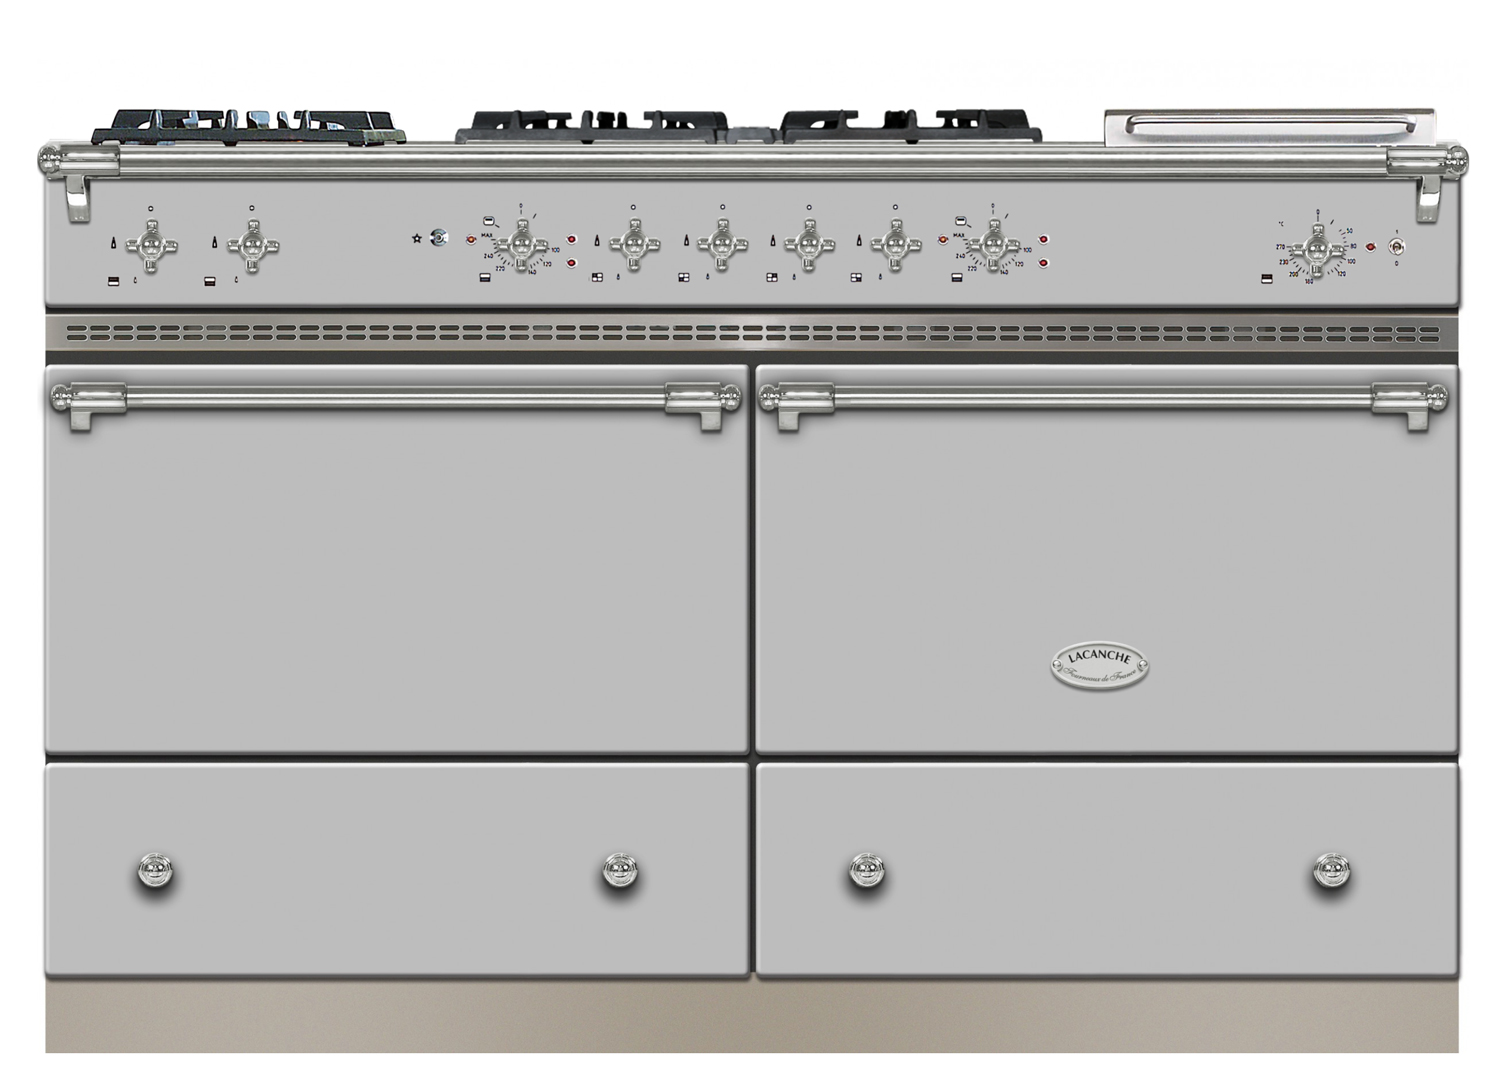 Stainless steel Lacanche range cooker